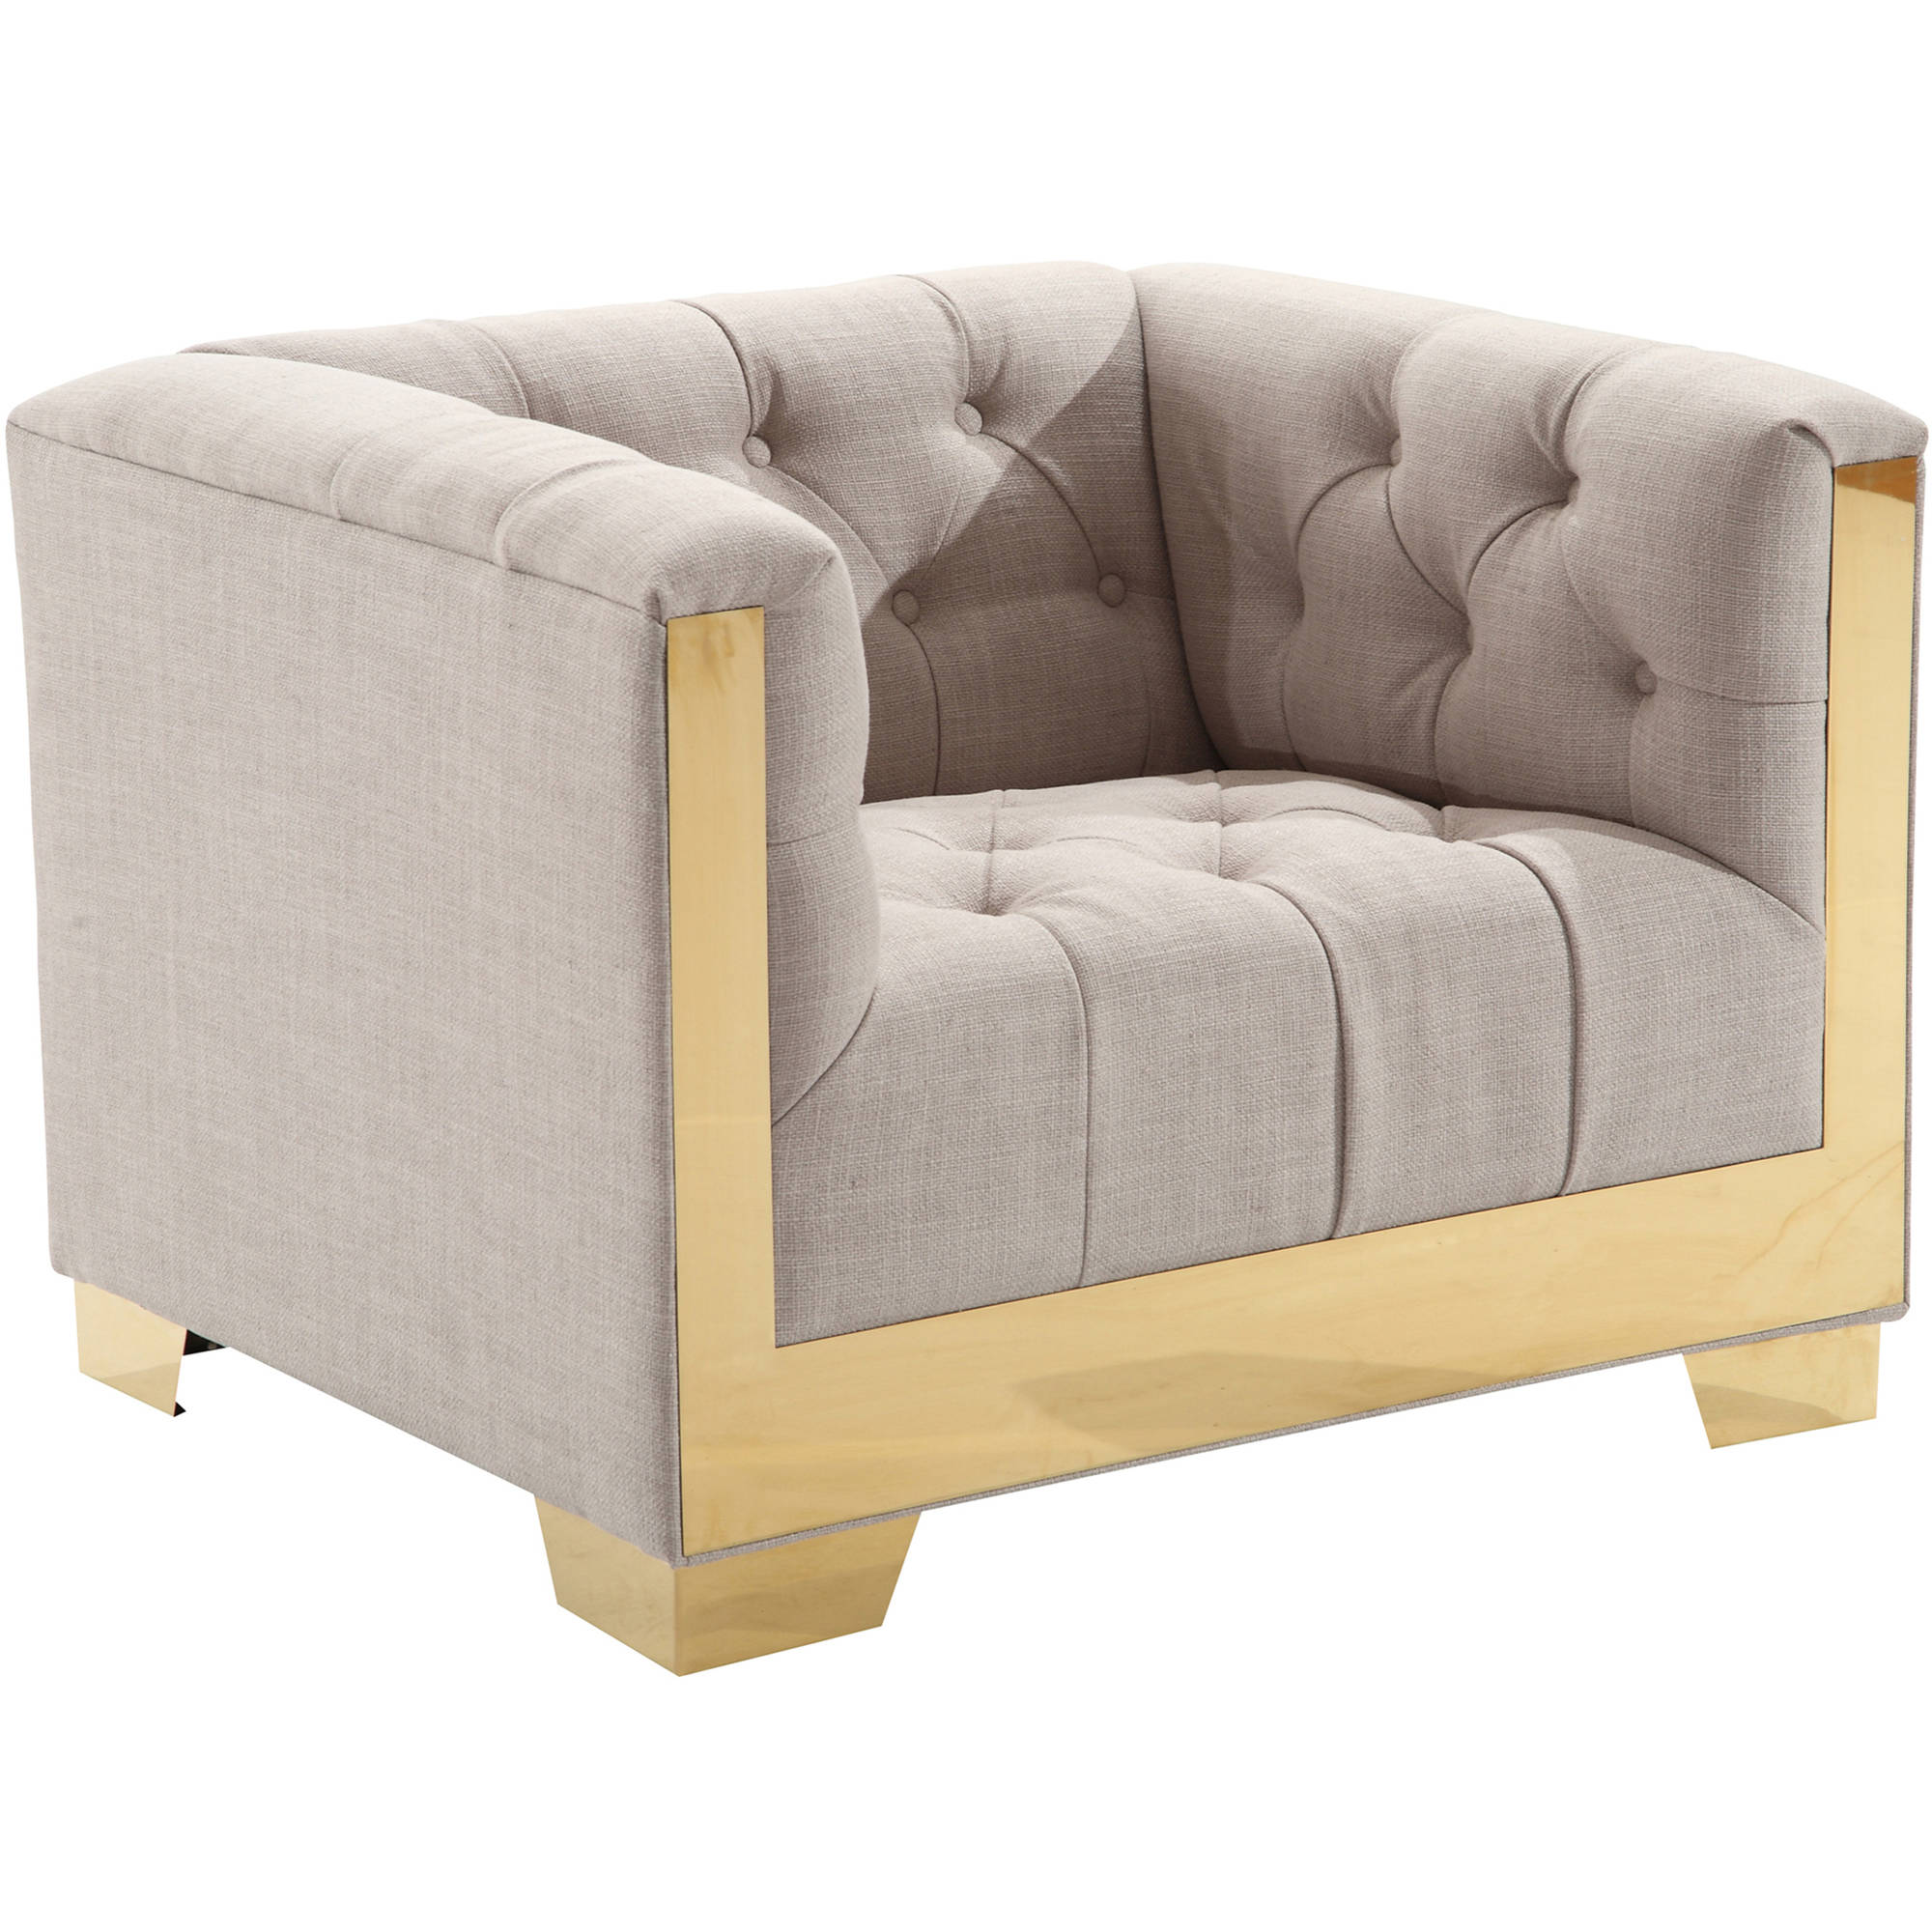 ARMEN LIVING Zinc Contemporary Chair, Taupe Tweed and Shiny Gold Finish